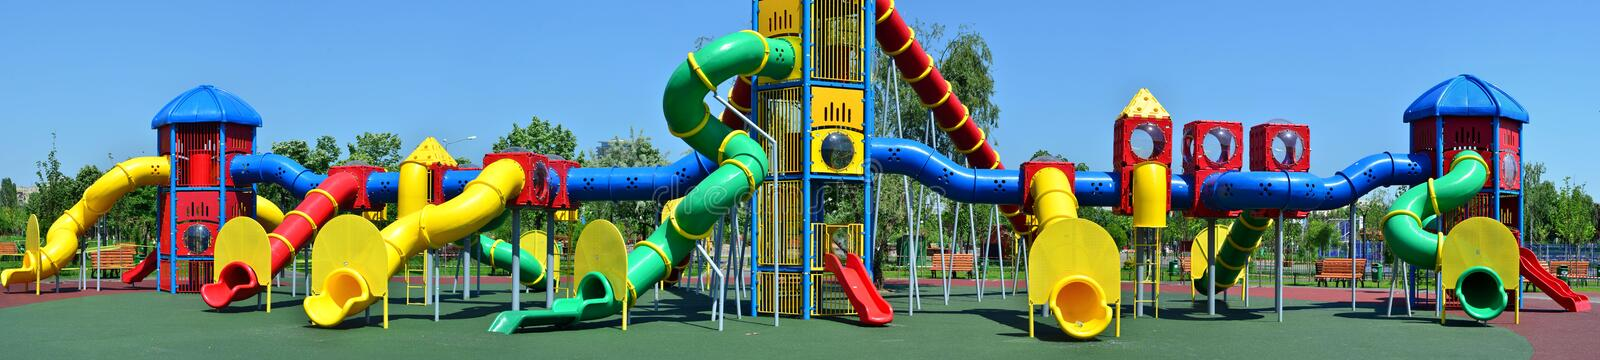 Download Huge Playground In The Park Royalty Free Stock Photo - Image: 19705425